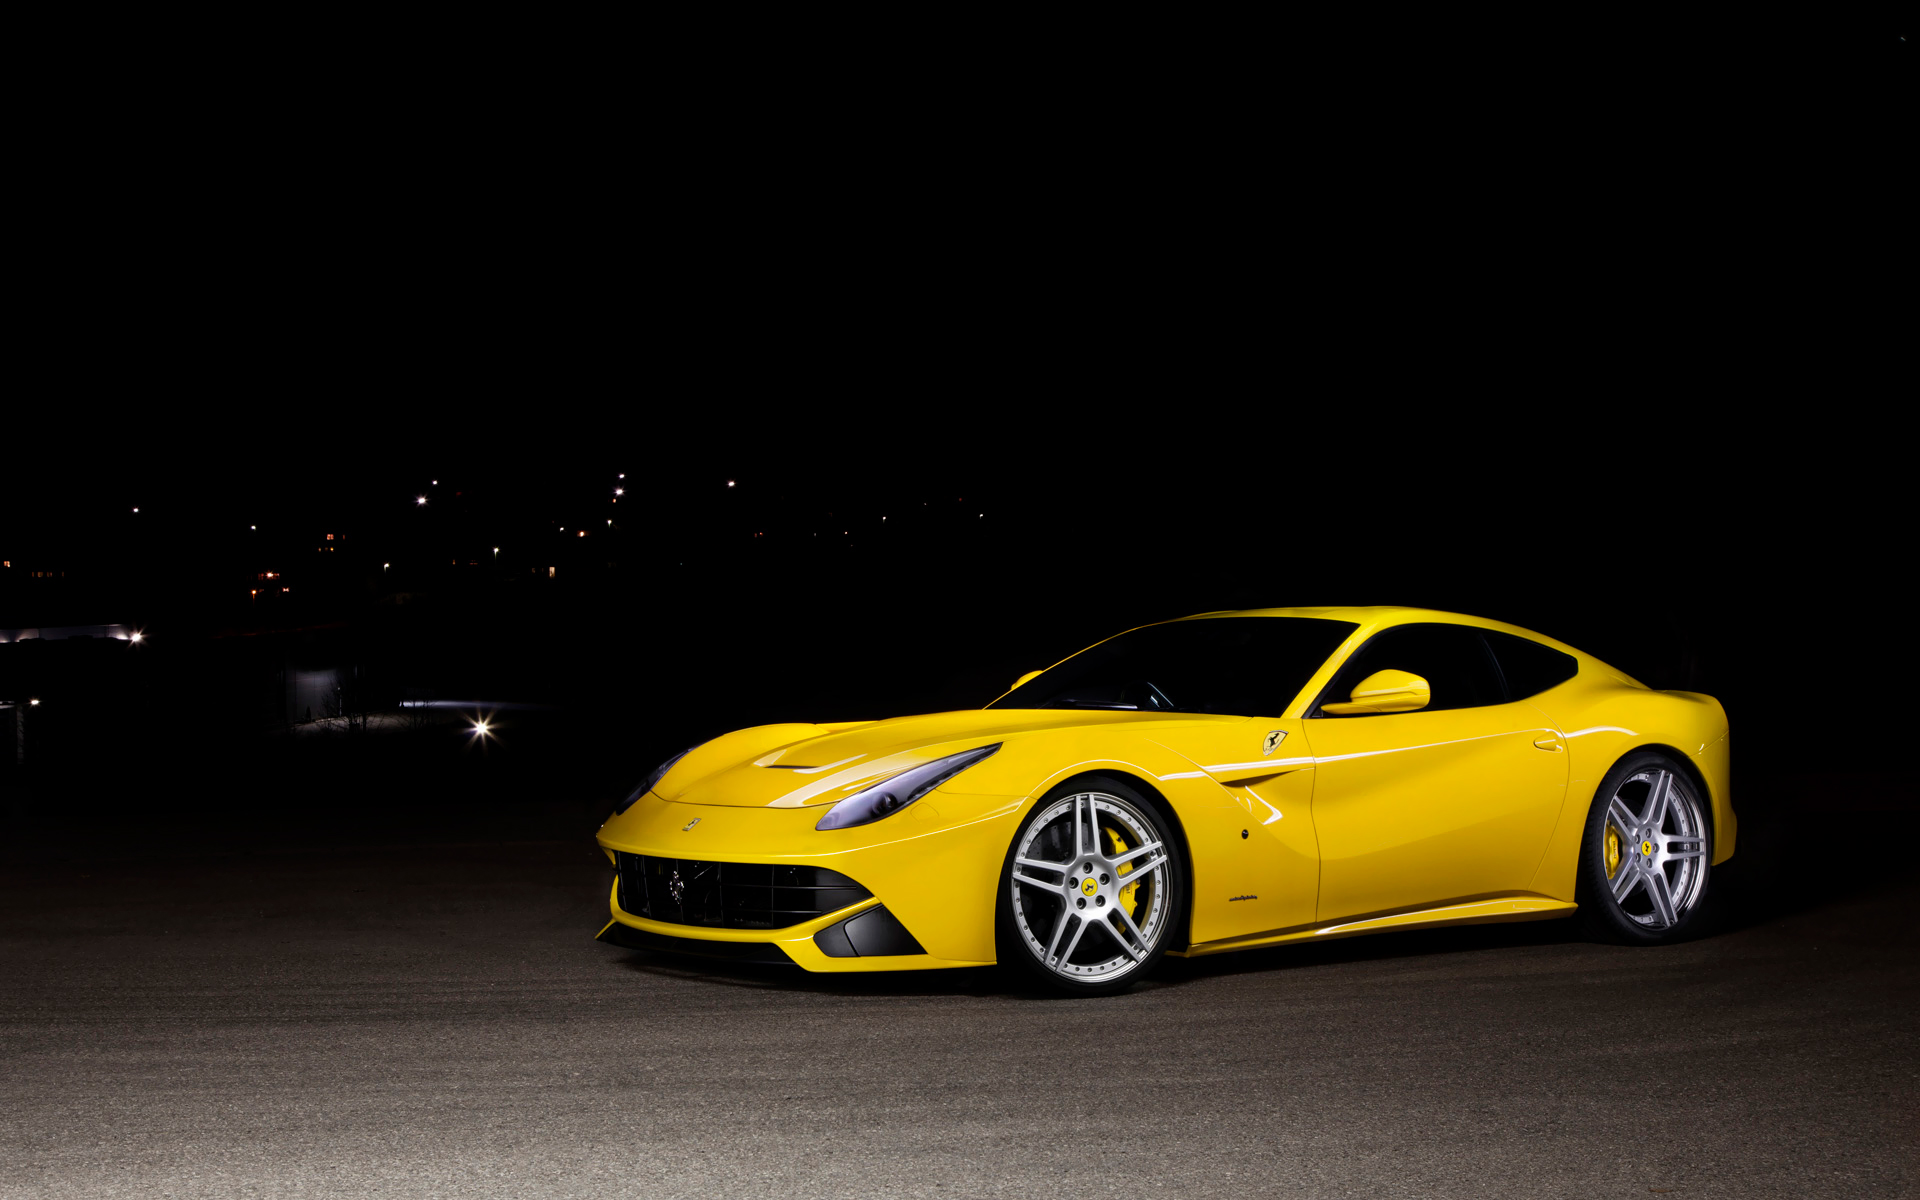 yellow ferrari wallpaper 36221